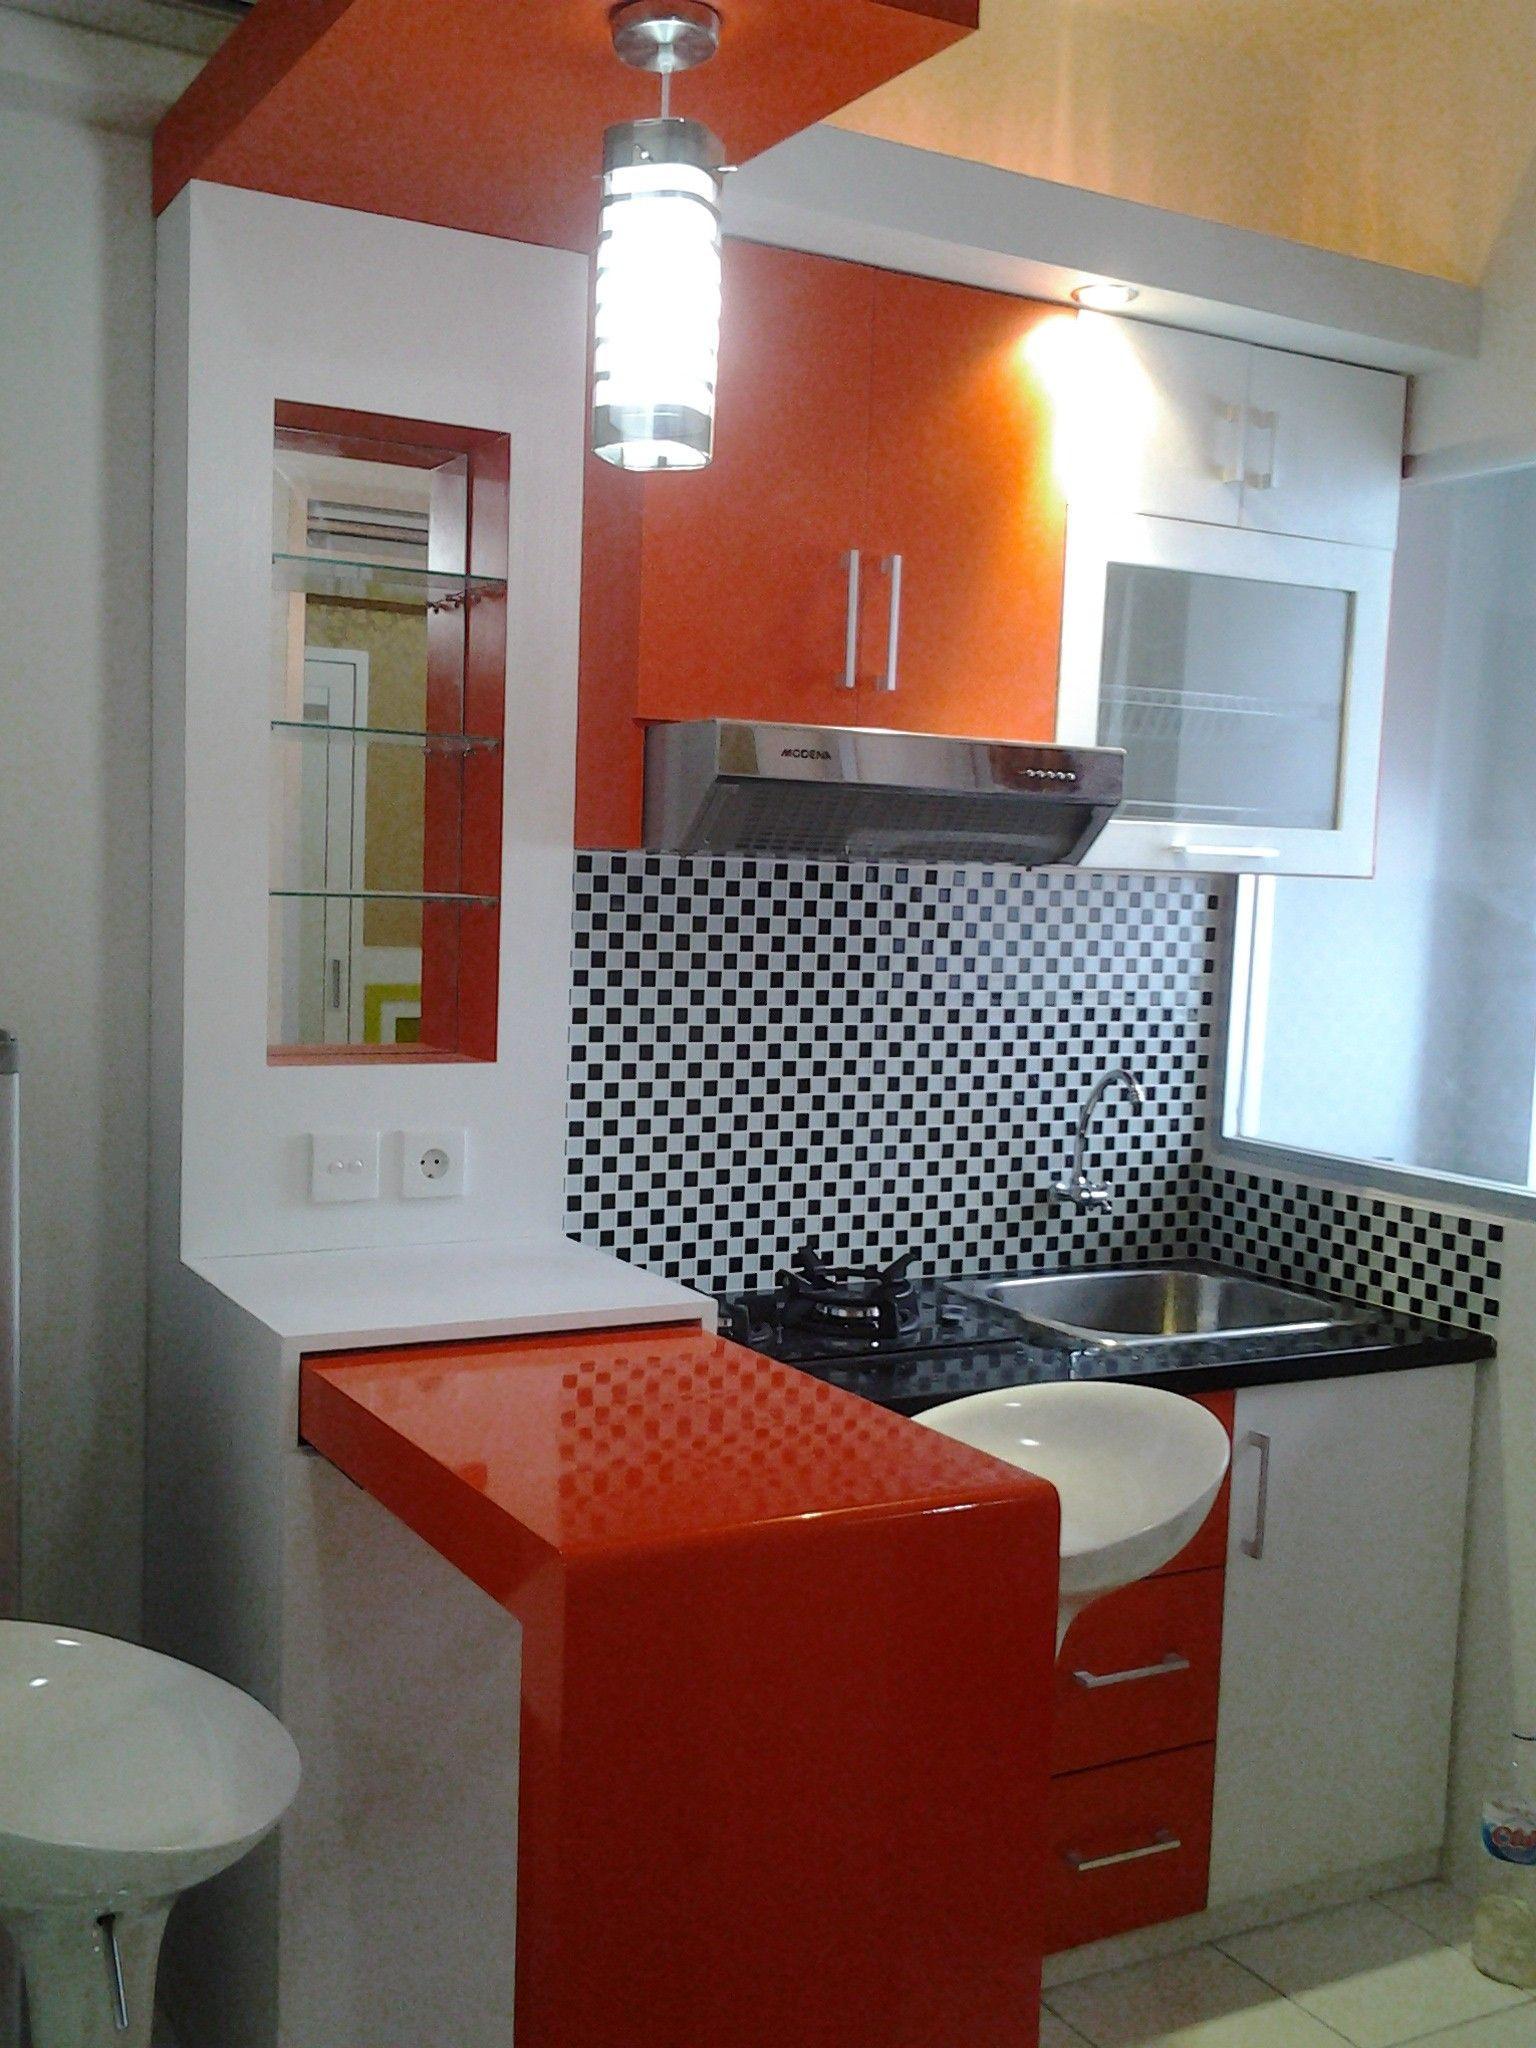 Kitchen set minimalis hub 0817351851 www kitchensetbali com